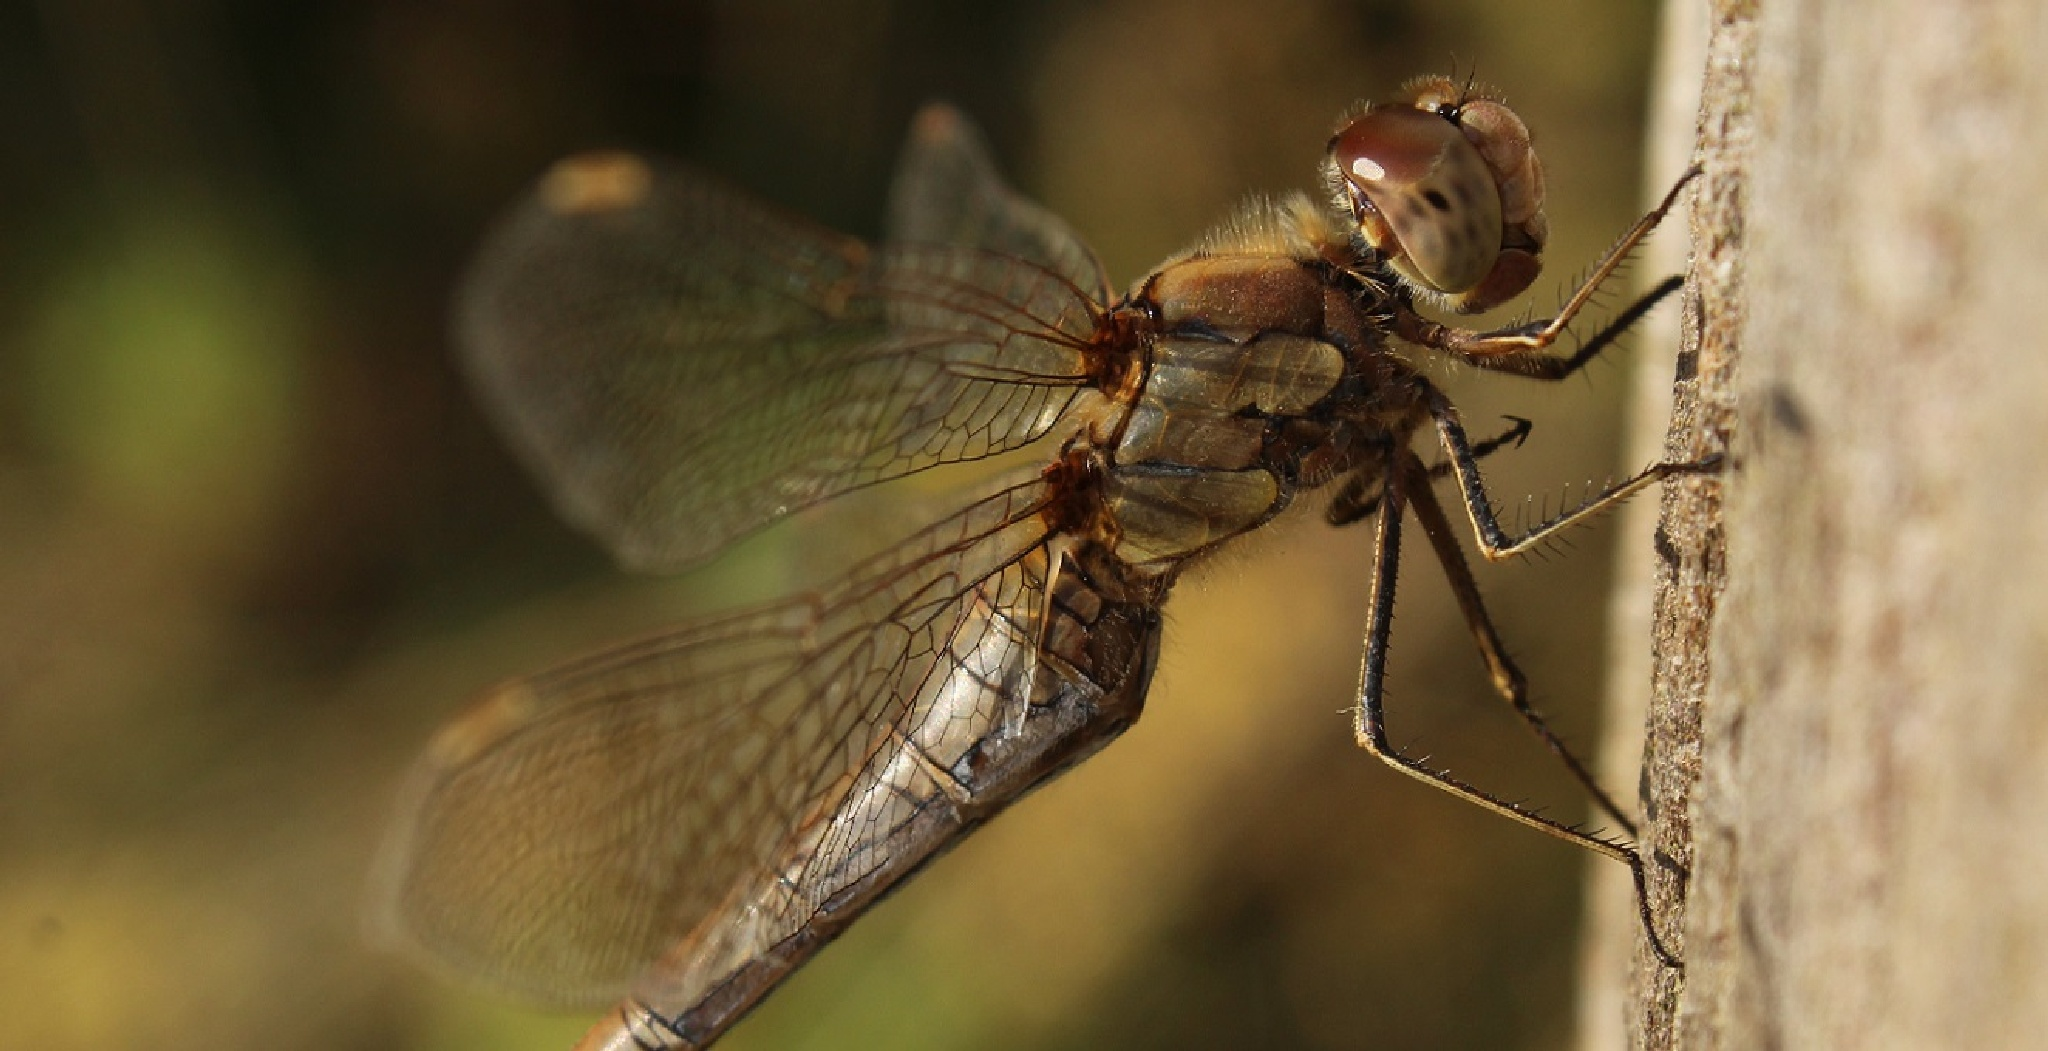 Common Darter Dragonfly by jodie.mellowship